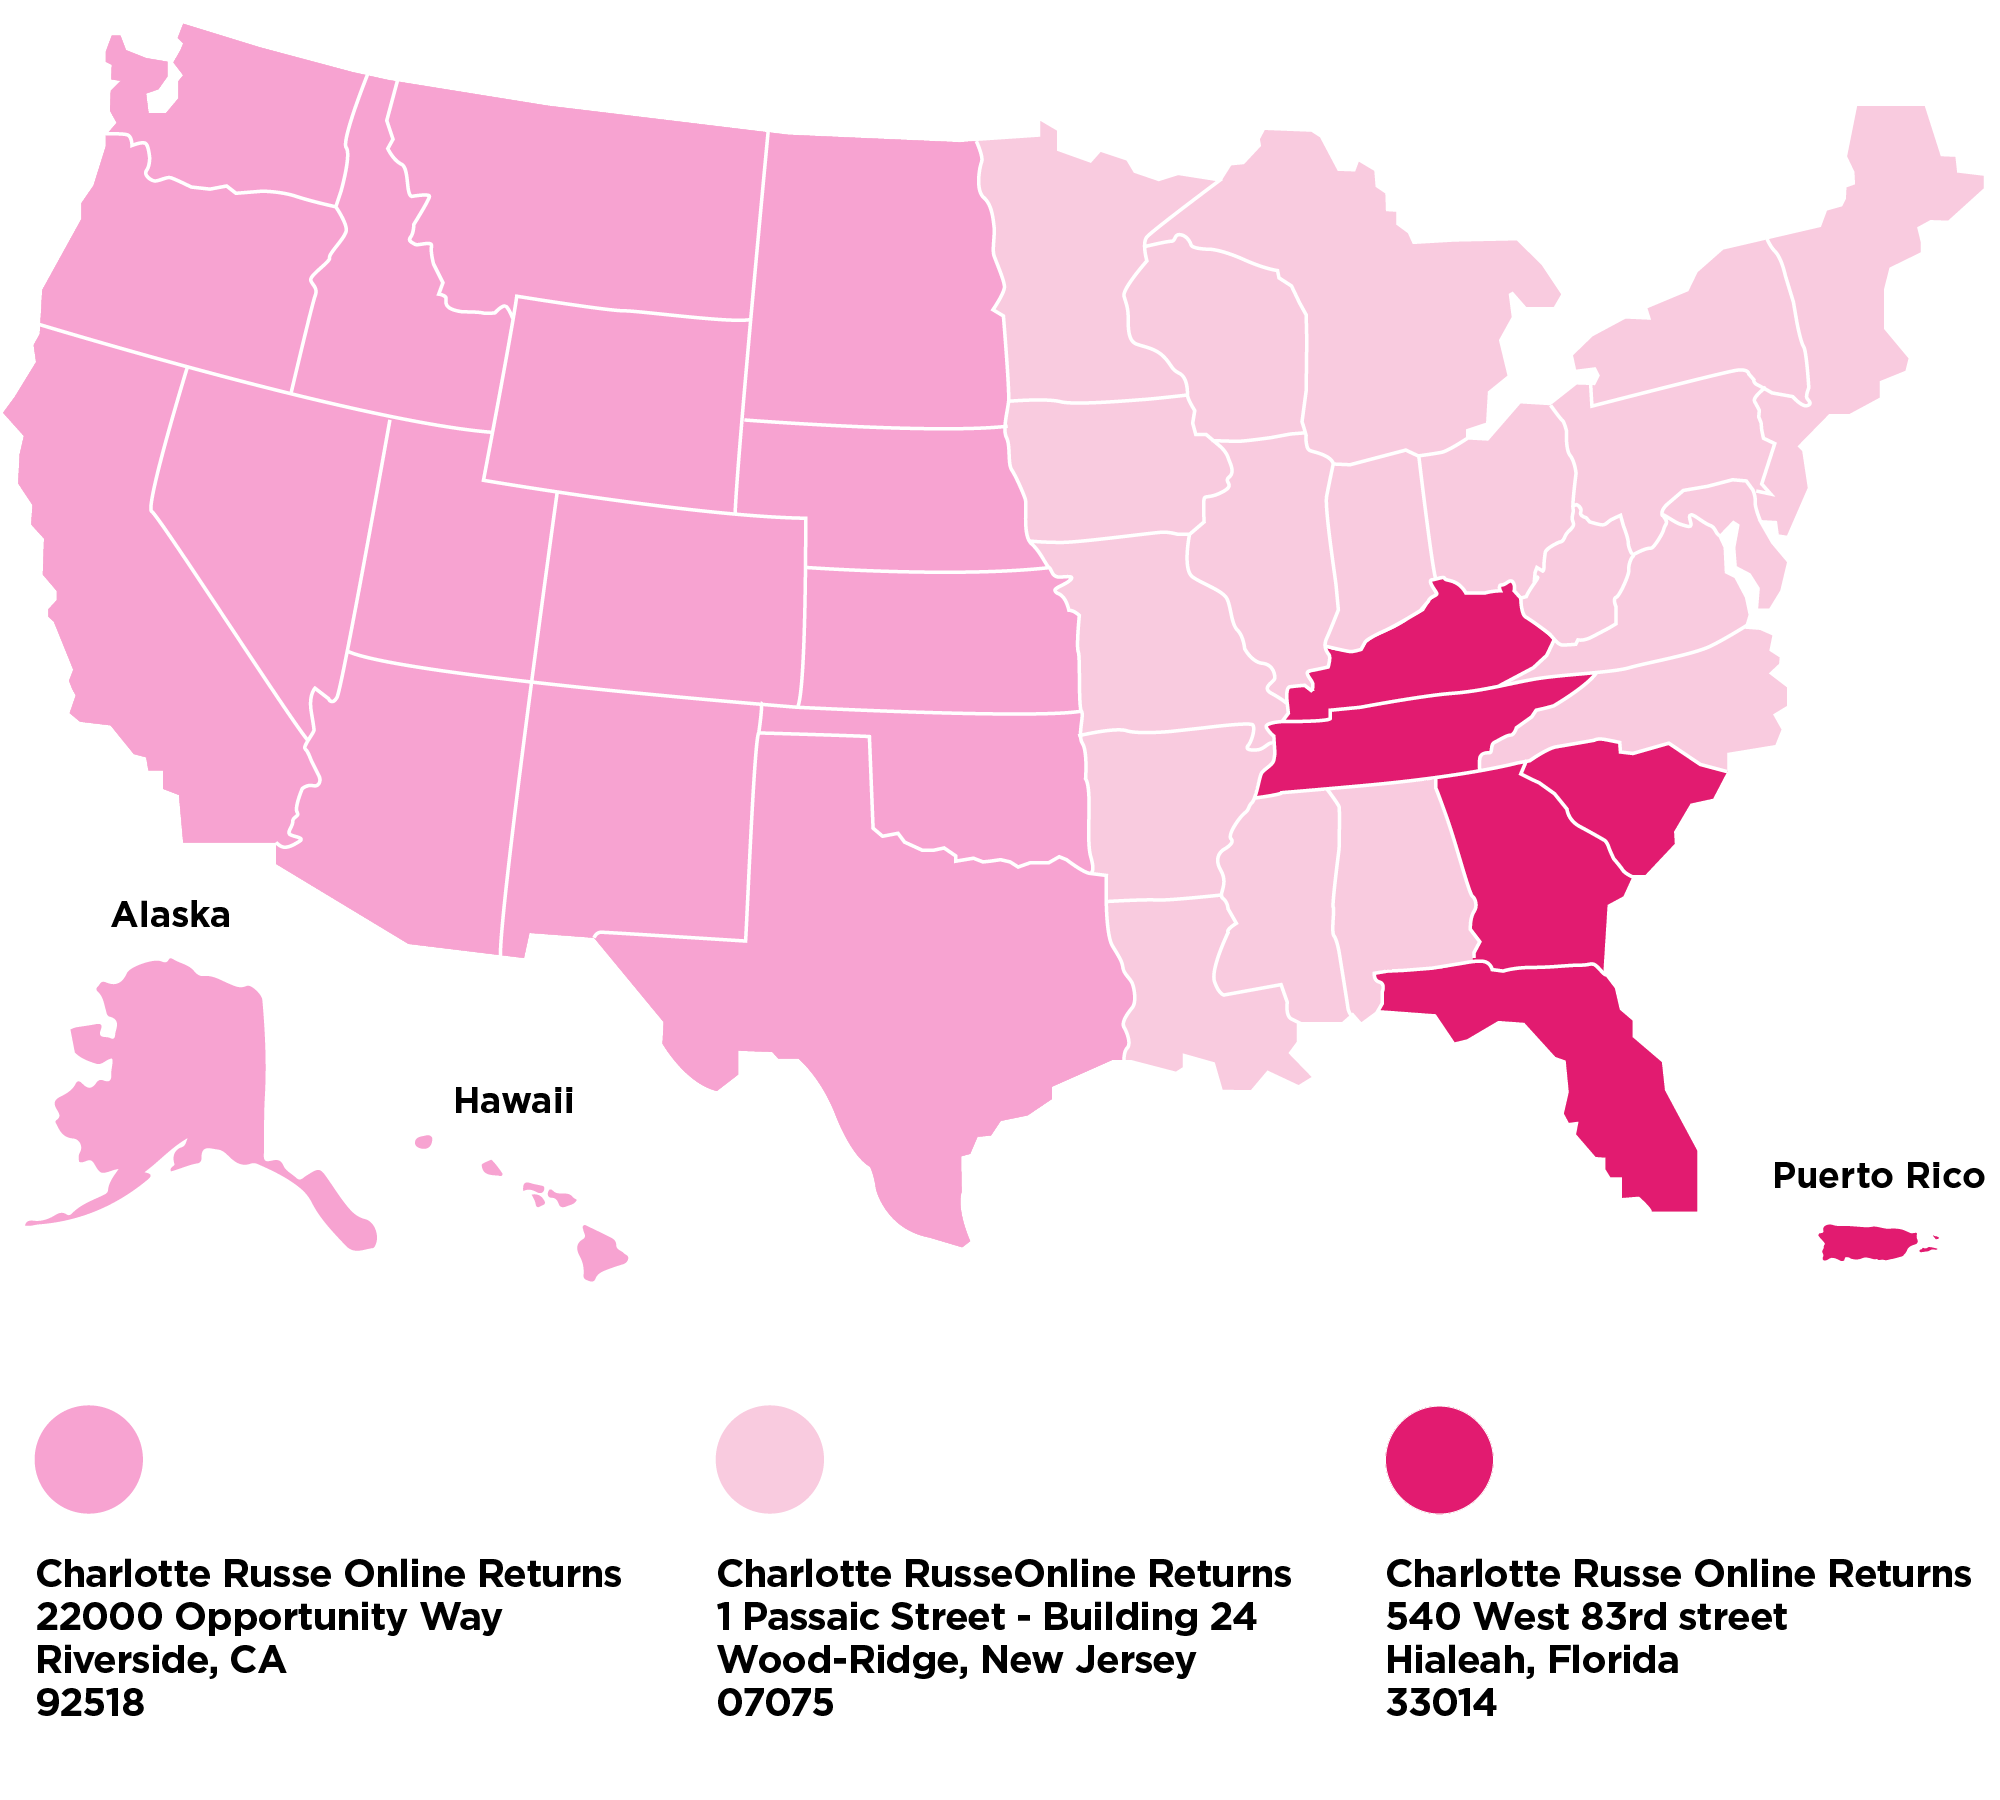 Charlotte Russe - Return Policy Map